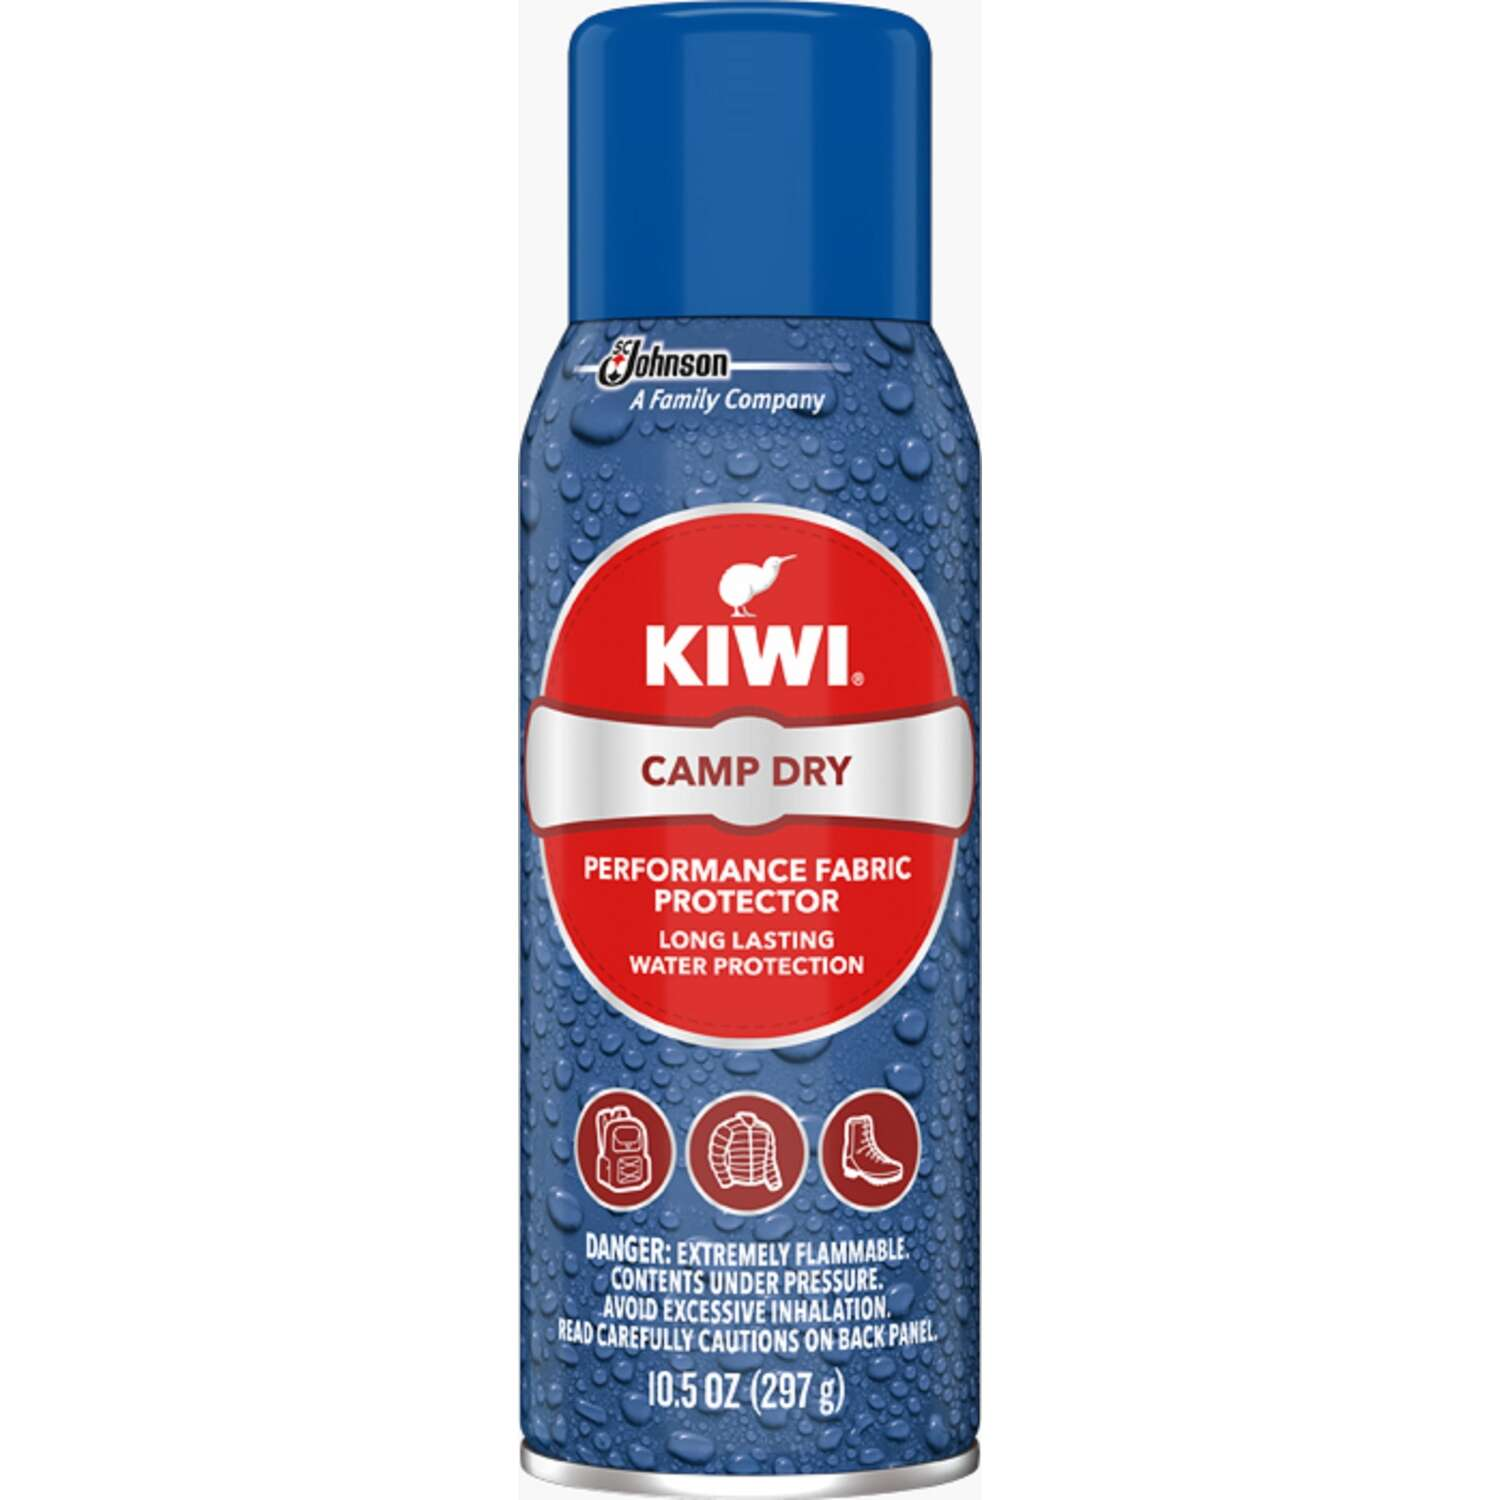 Kiwi  Clear  Camp Dry Fabric Protector  10.5 oz.